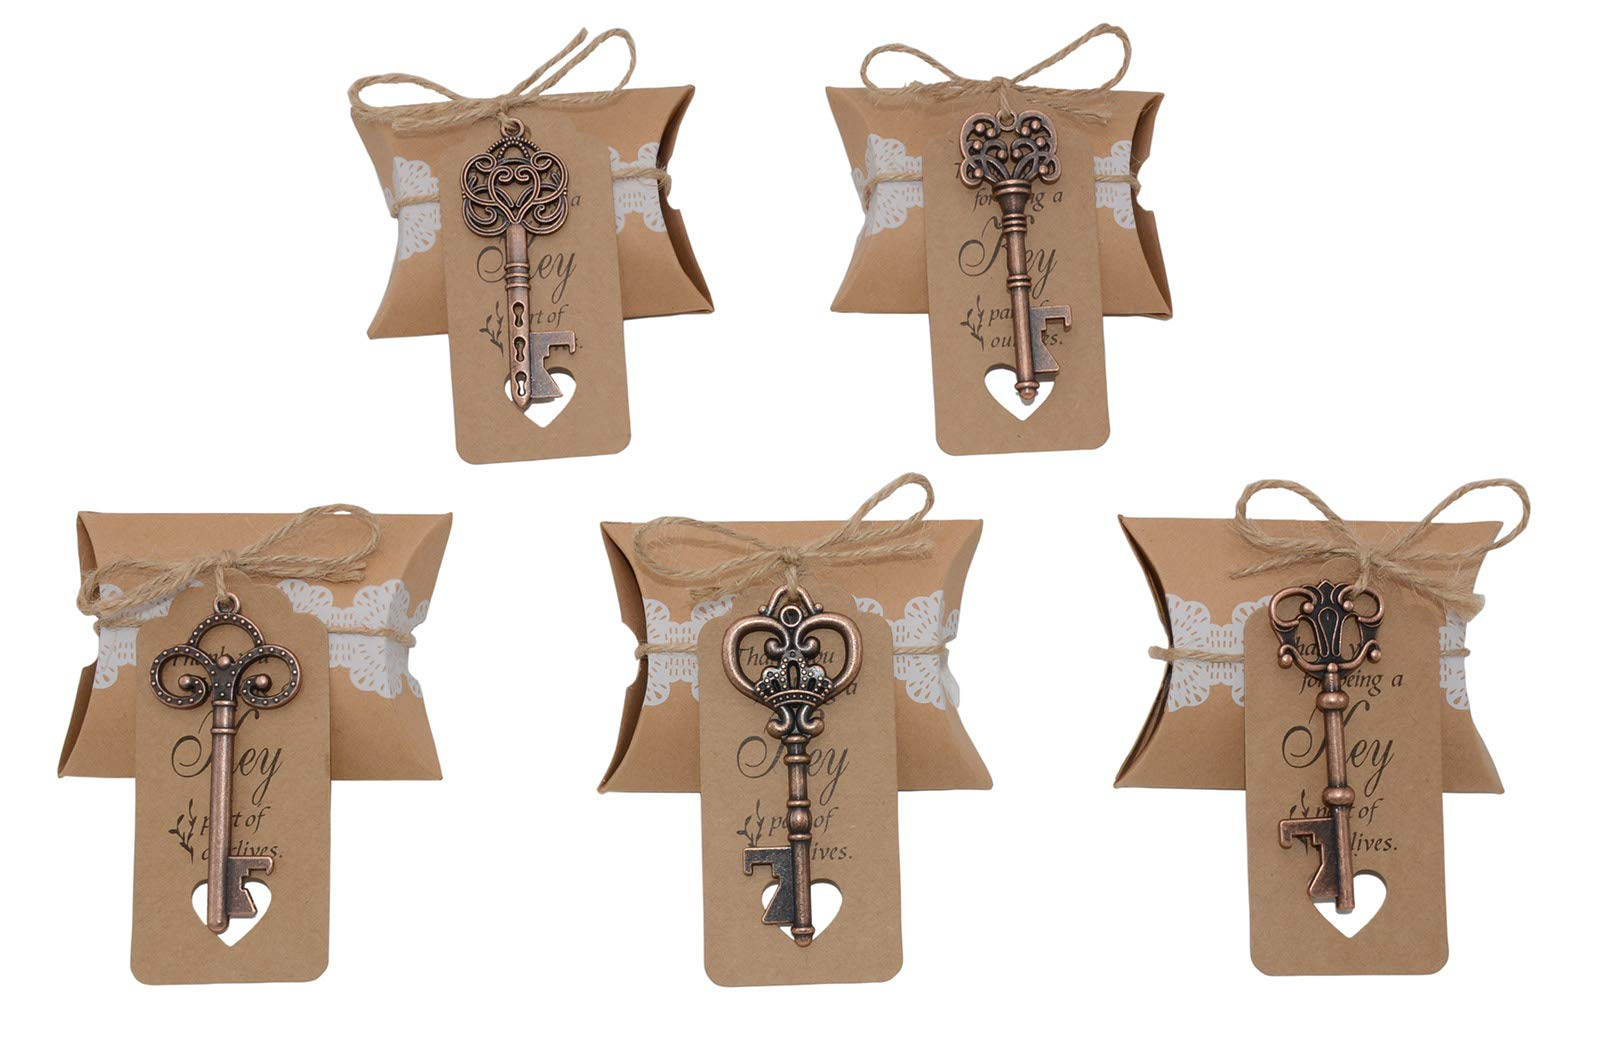 Wedding Favors for Guests 100 Pack Mixed Large Skeleton Key Bottle Openers (Copper) with Tag and Pillow Candy Box and Twine Vintage Bridal Shower Favors Bottle Openers (100 pack copper)